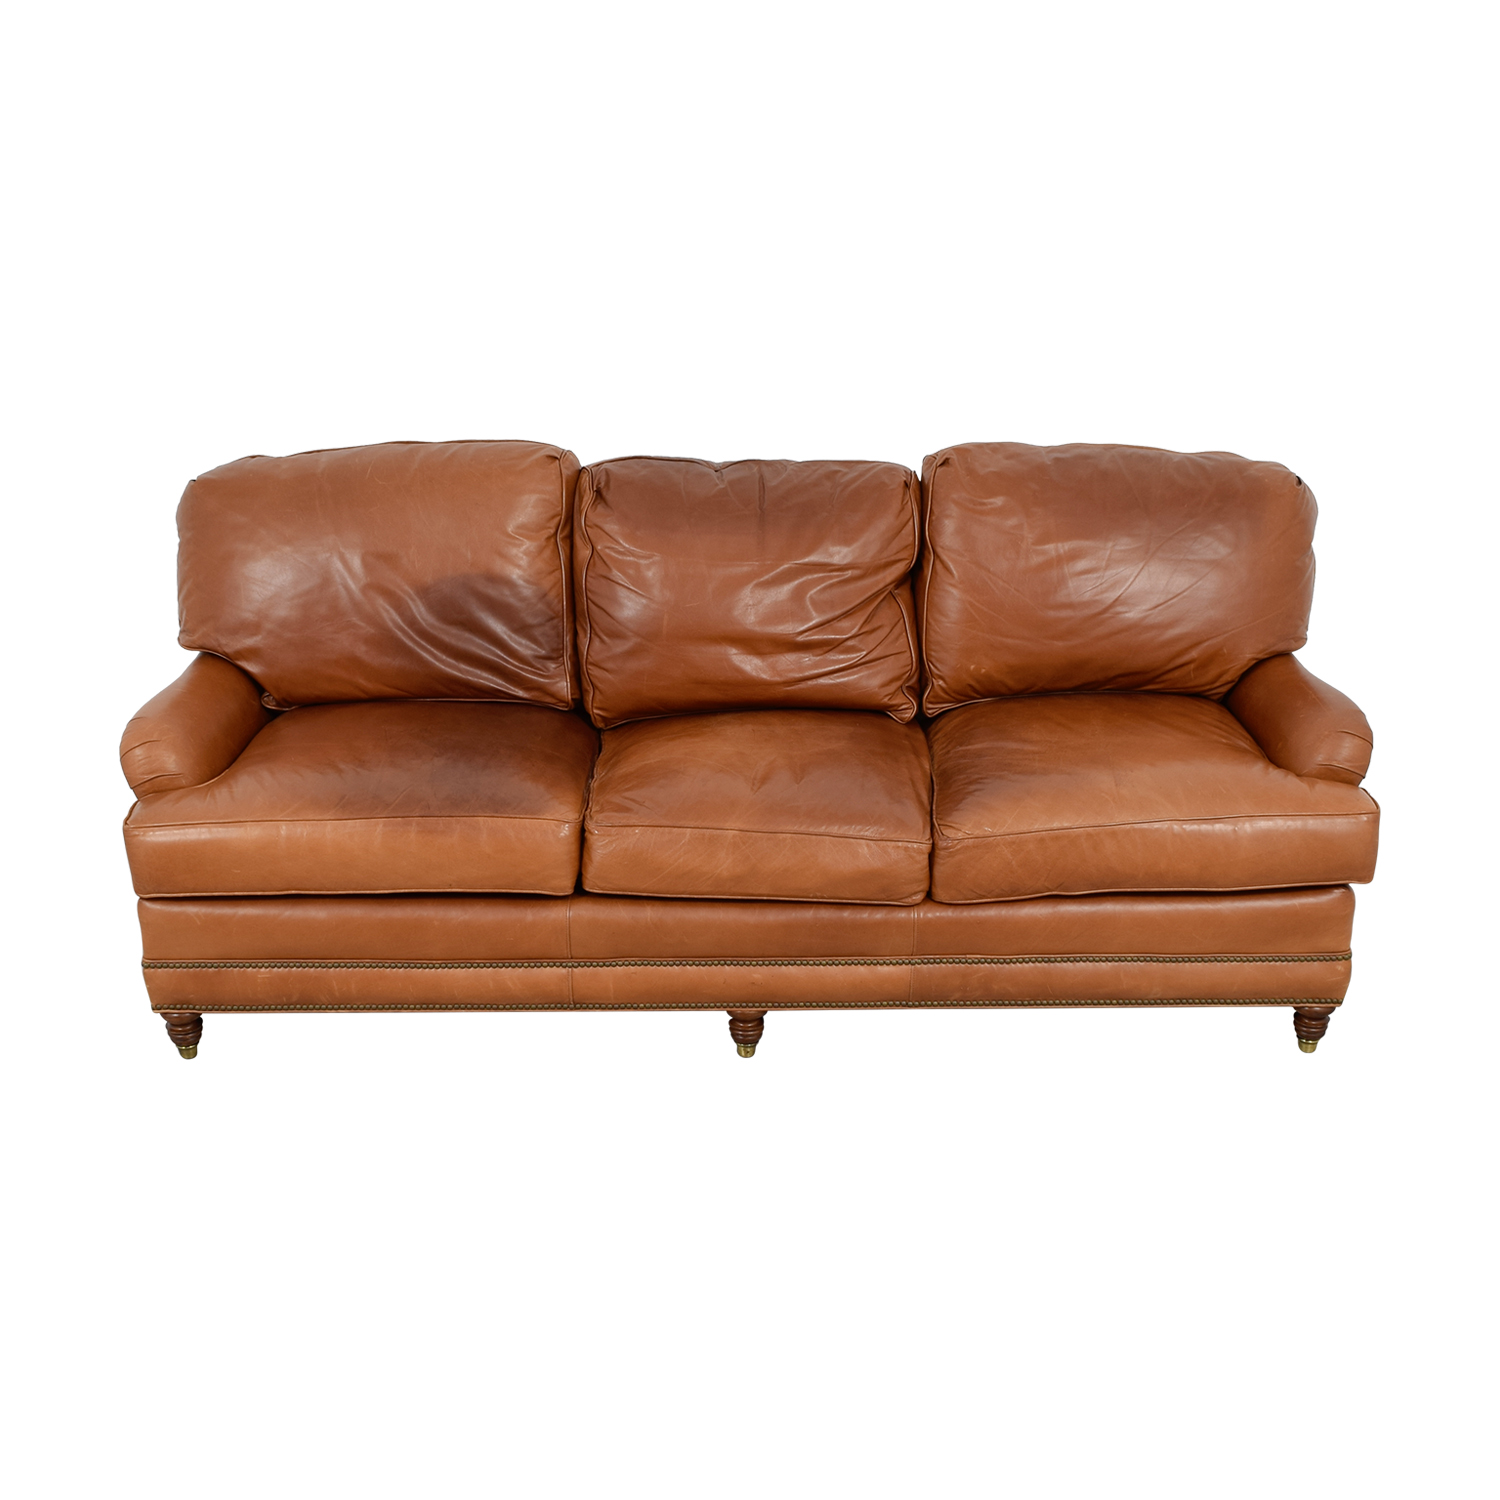 shop Whittemore-Sherrill Whittemore-Sherrill Brown Leather Sofa online